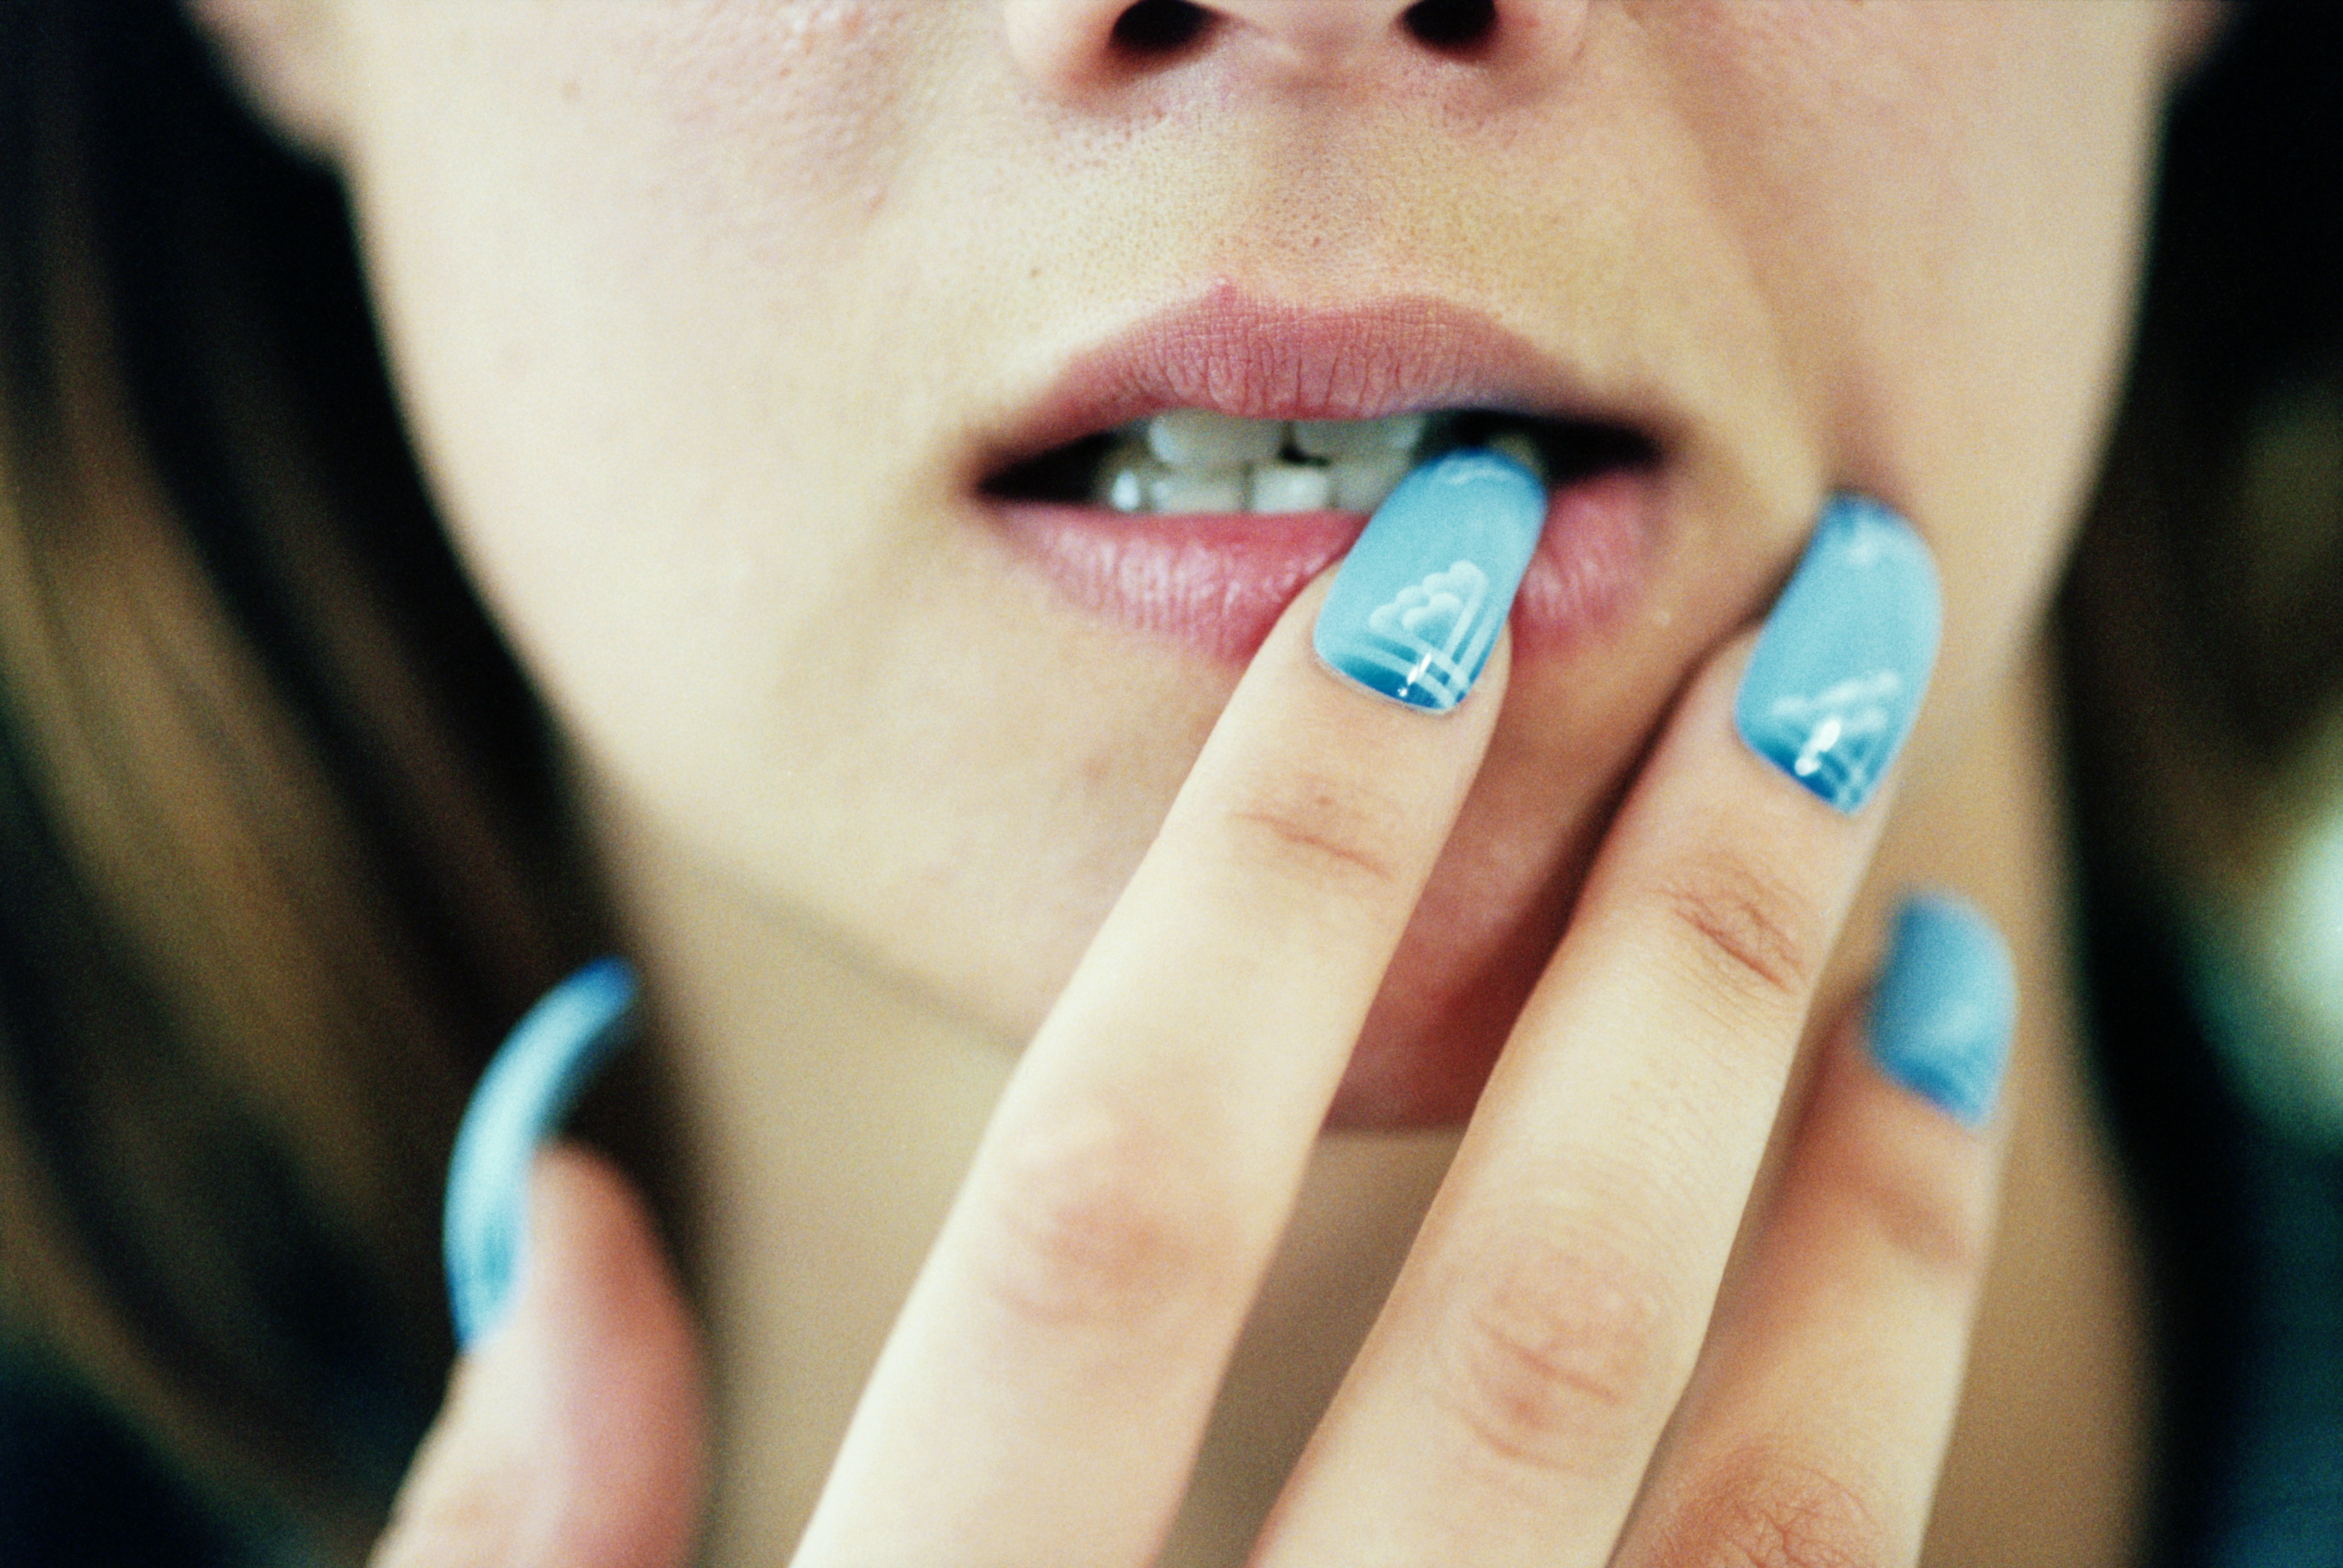 Women Are Stopping an Anxious Skin-Picking Habit With Fake Nails